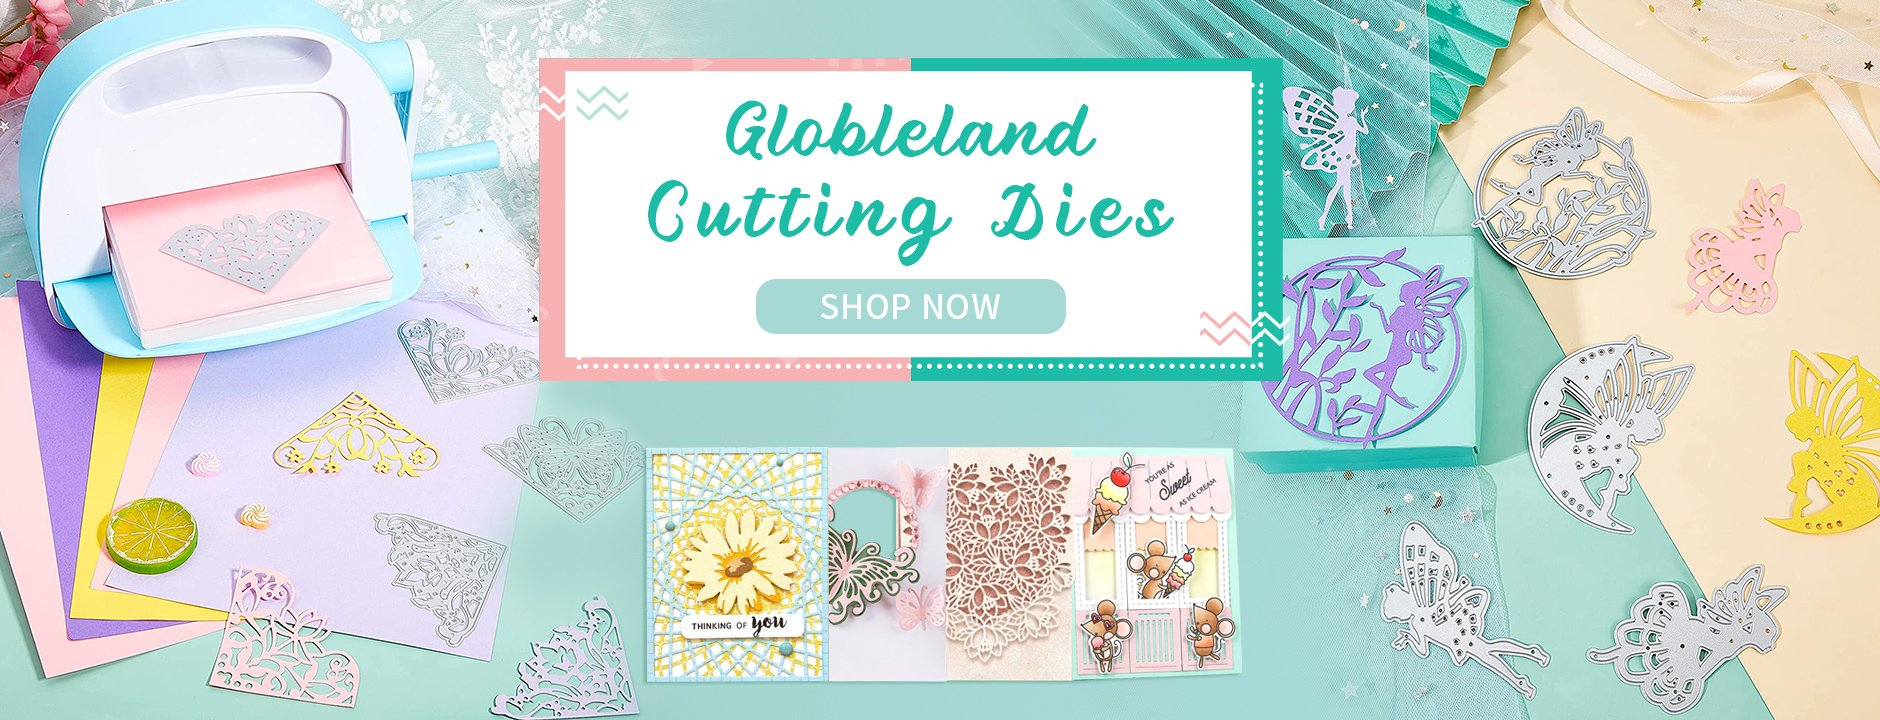 Globleland Provides Various Types of Cutting Dies and Silicone Stamps To Leave a Lasting and Colorful Imprints on Different Stuff